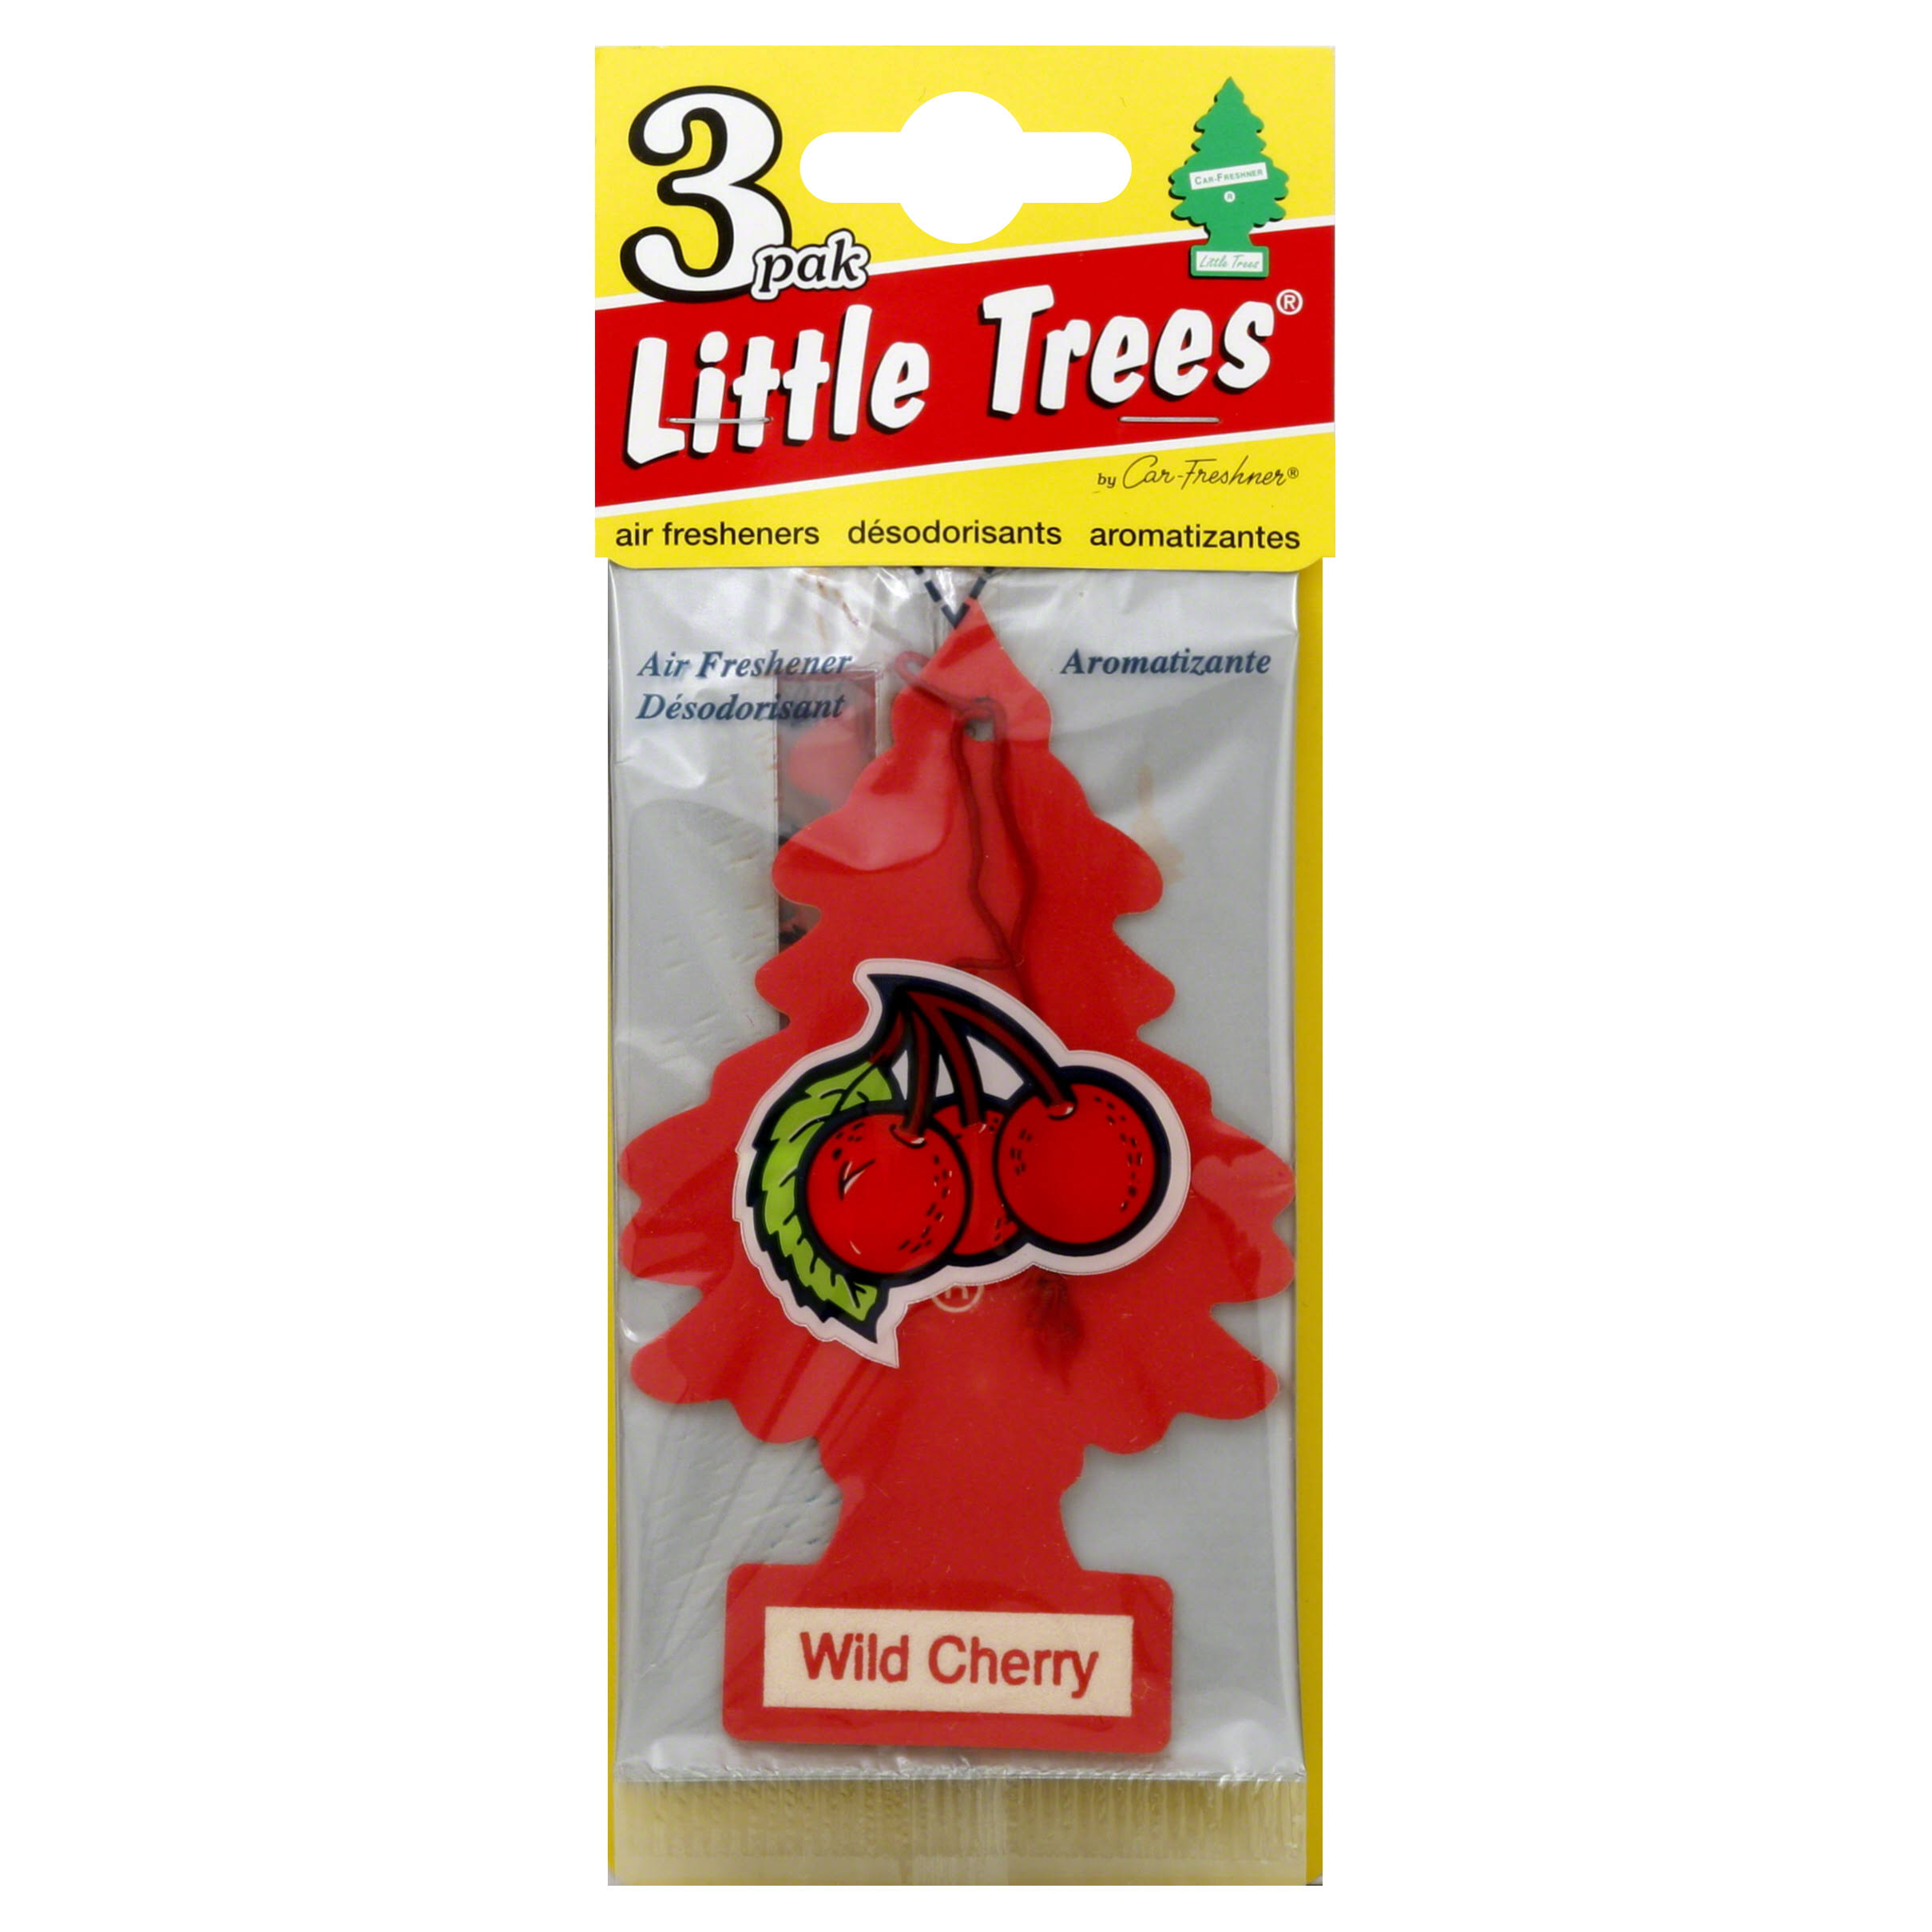 Little Tree Air Freshener - Wild Cherry, 3 Pack